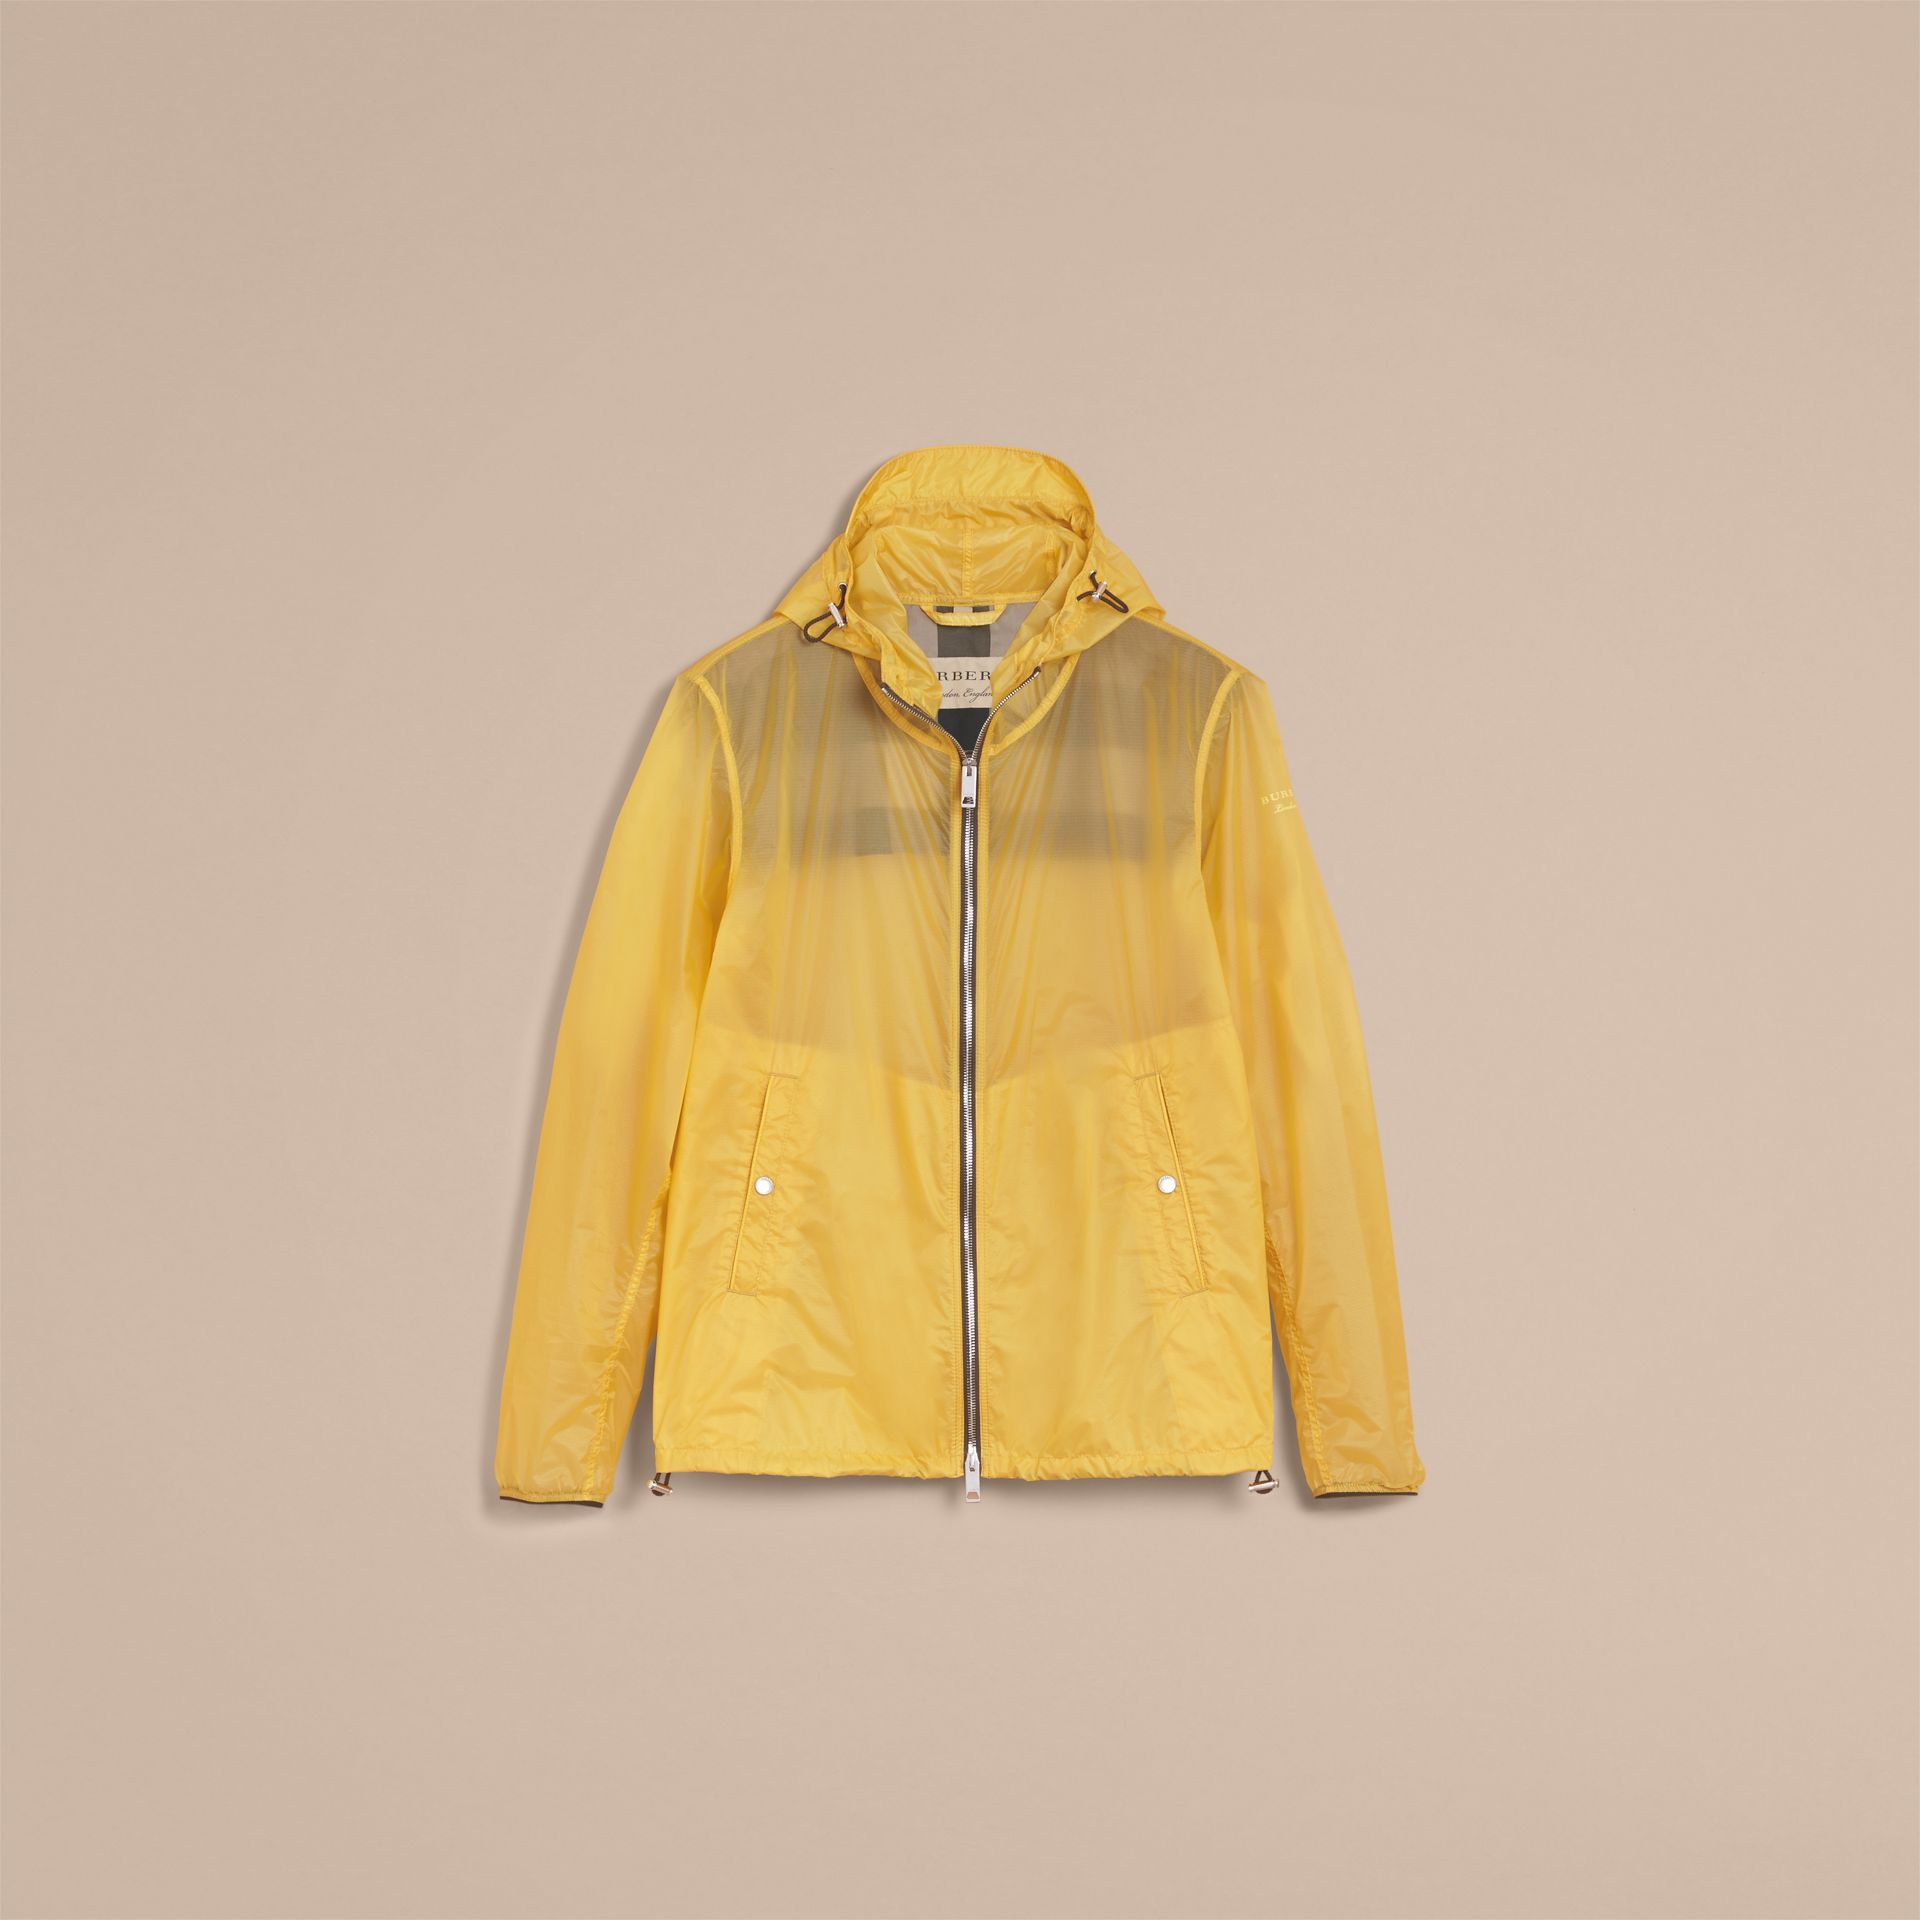 Hooded Super-lightweight Jacket in Pale Yellow - Men | Burberry Australia - gallery image 4